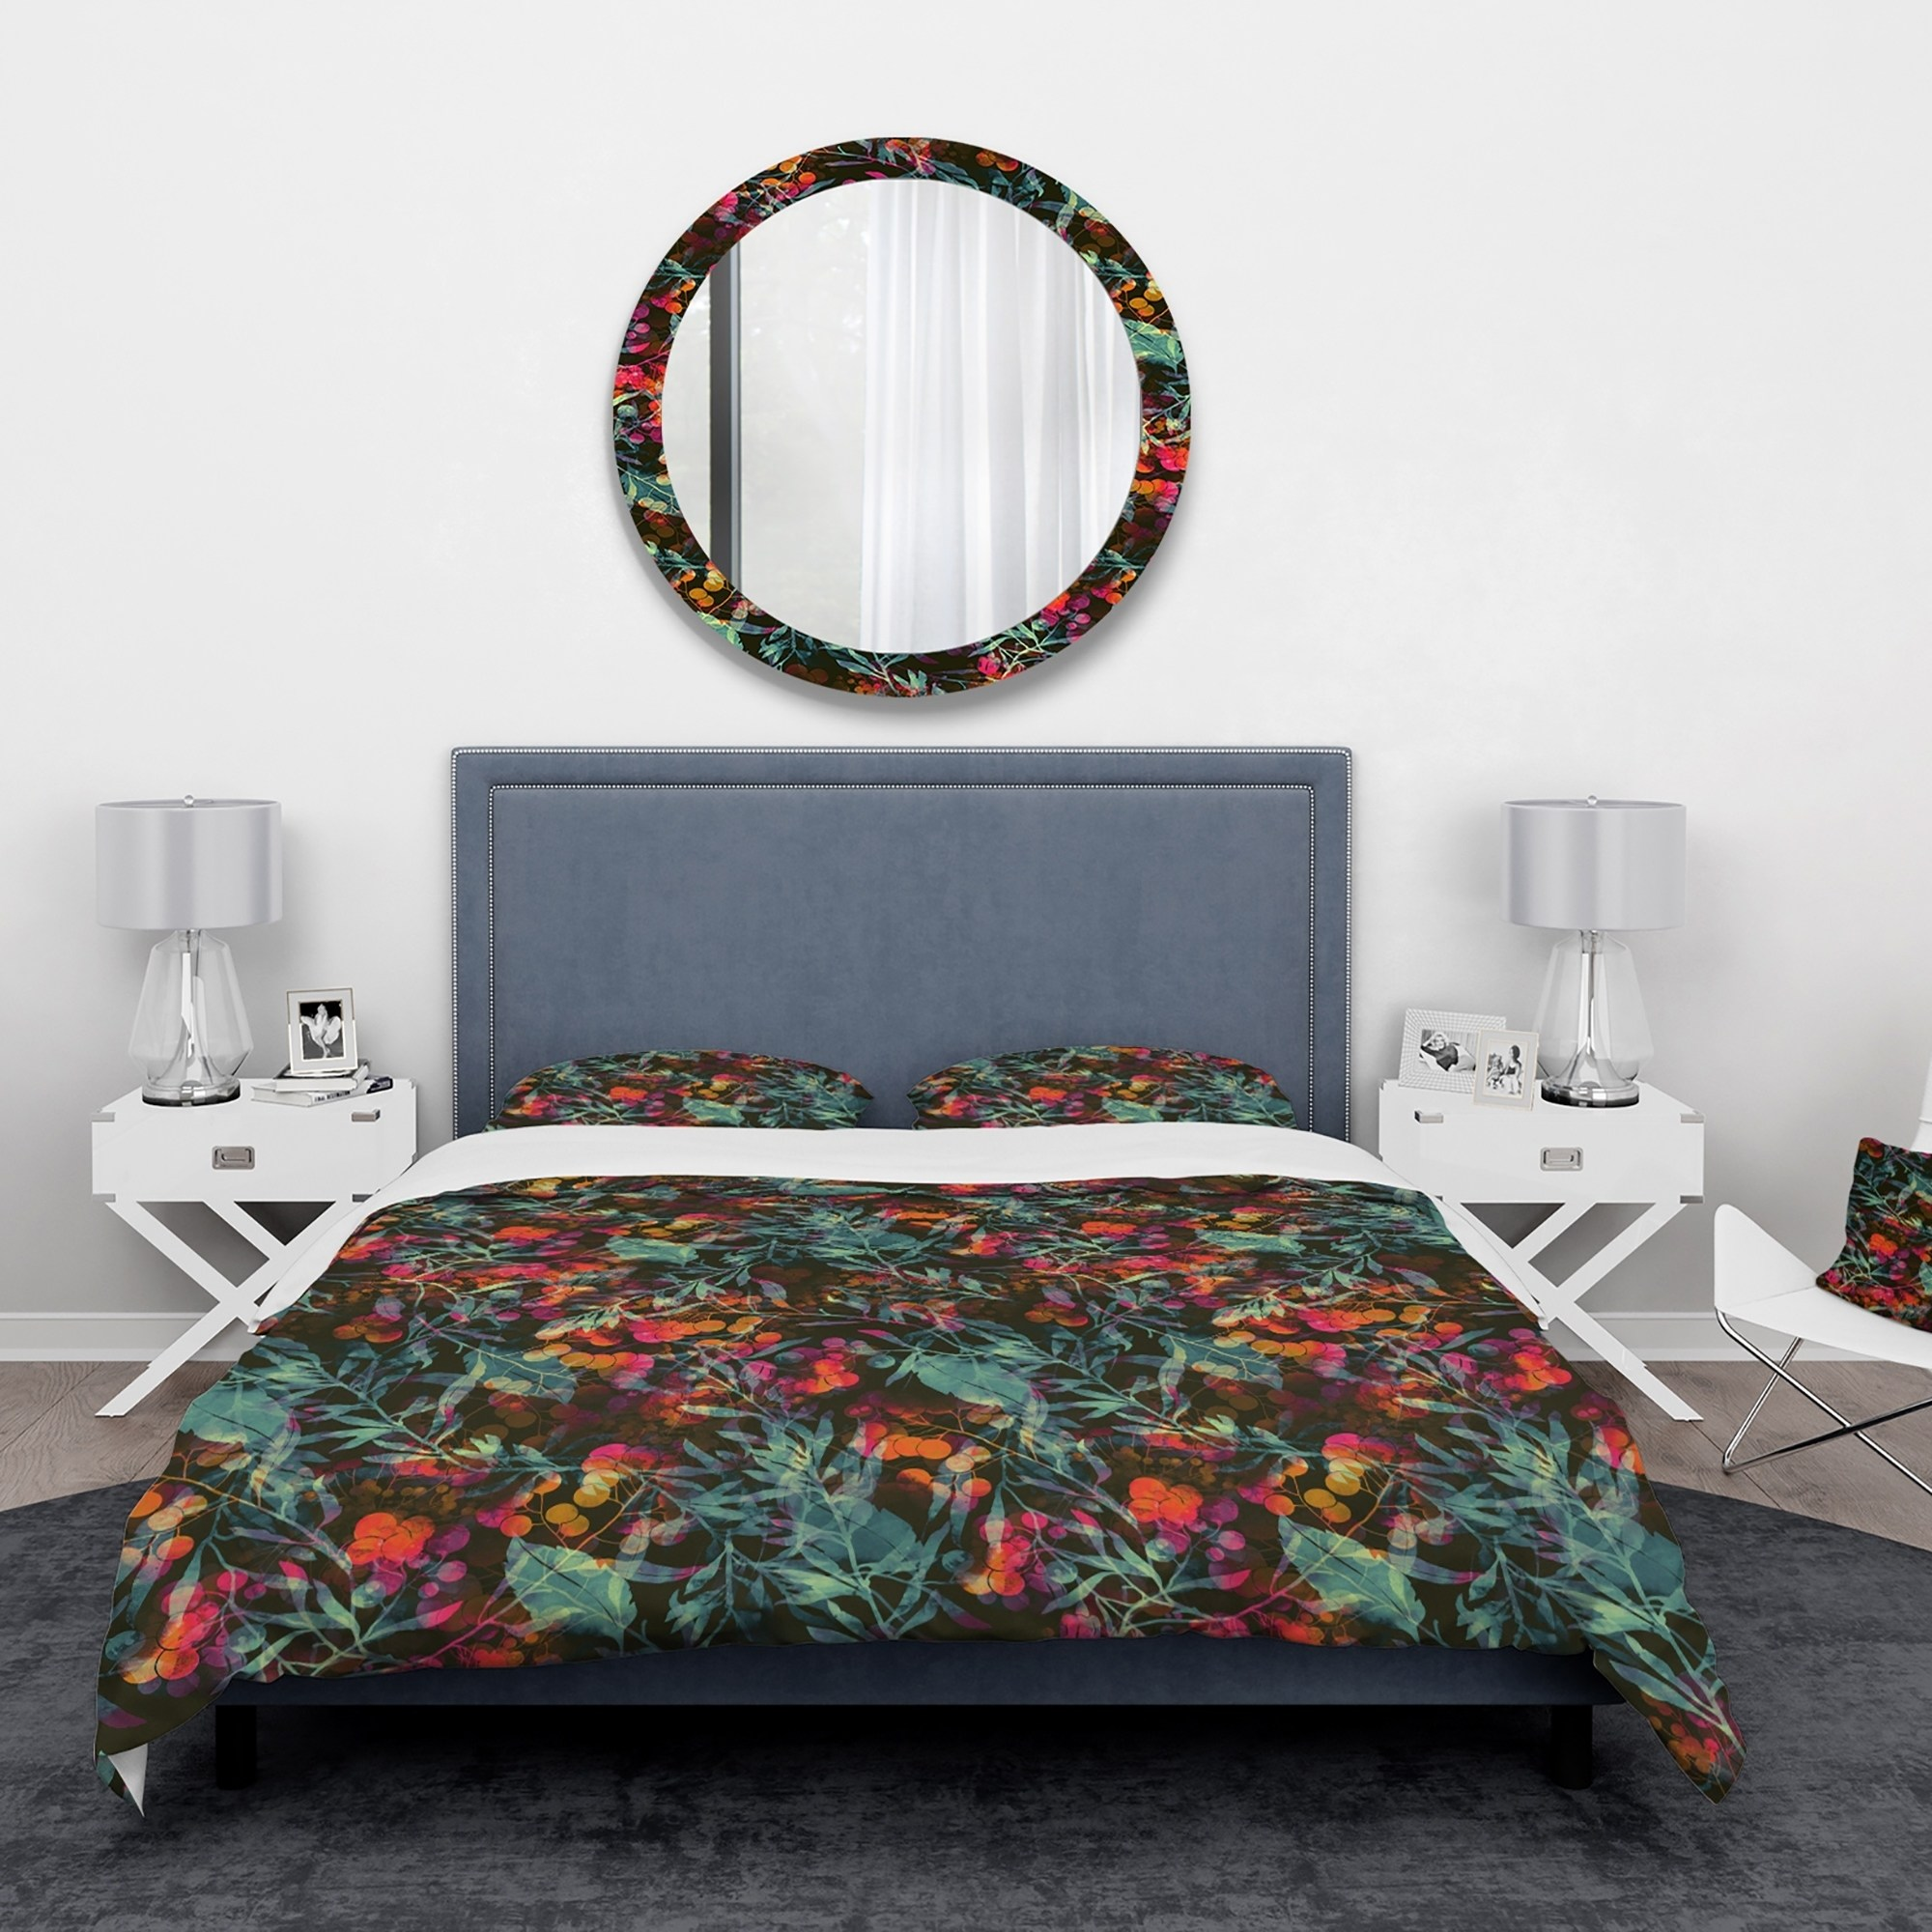 DESIGN ART Designart 'Superimposed blend of Herbs Flowers Leaves and Berries' Abstract Bedding Set - Duvet Cover & Shams